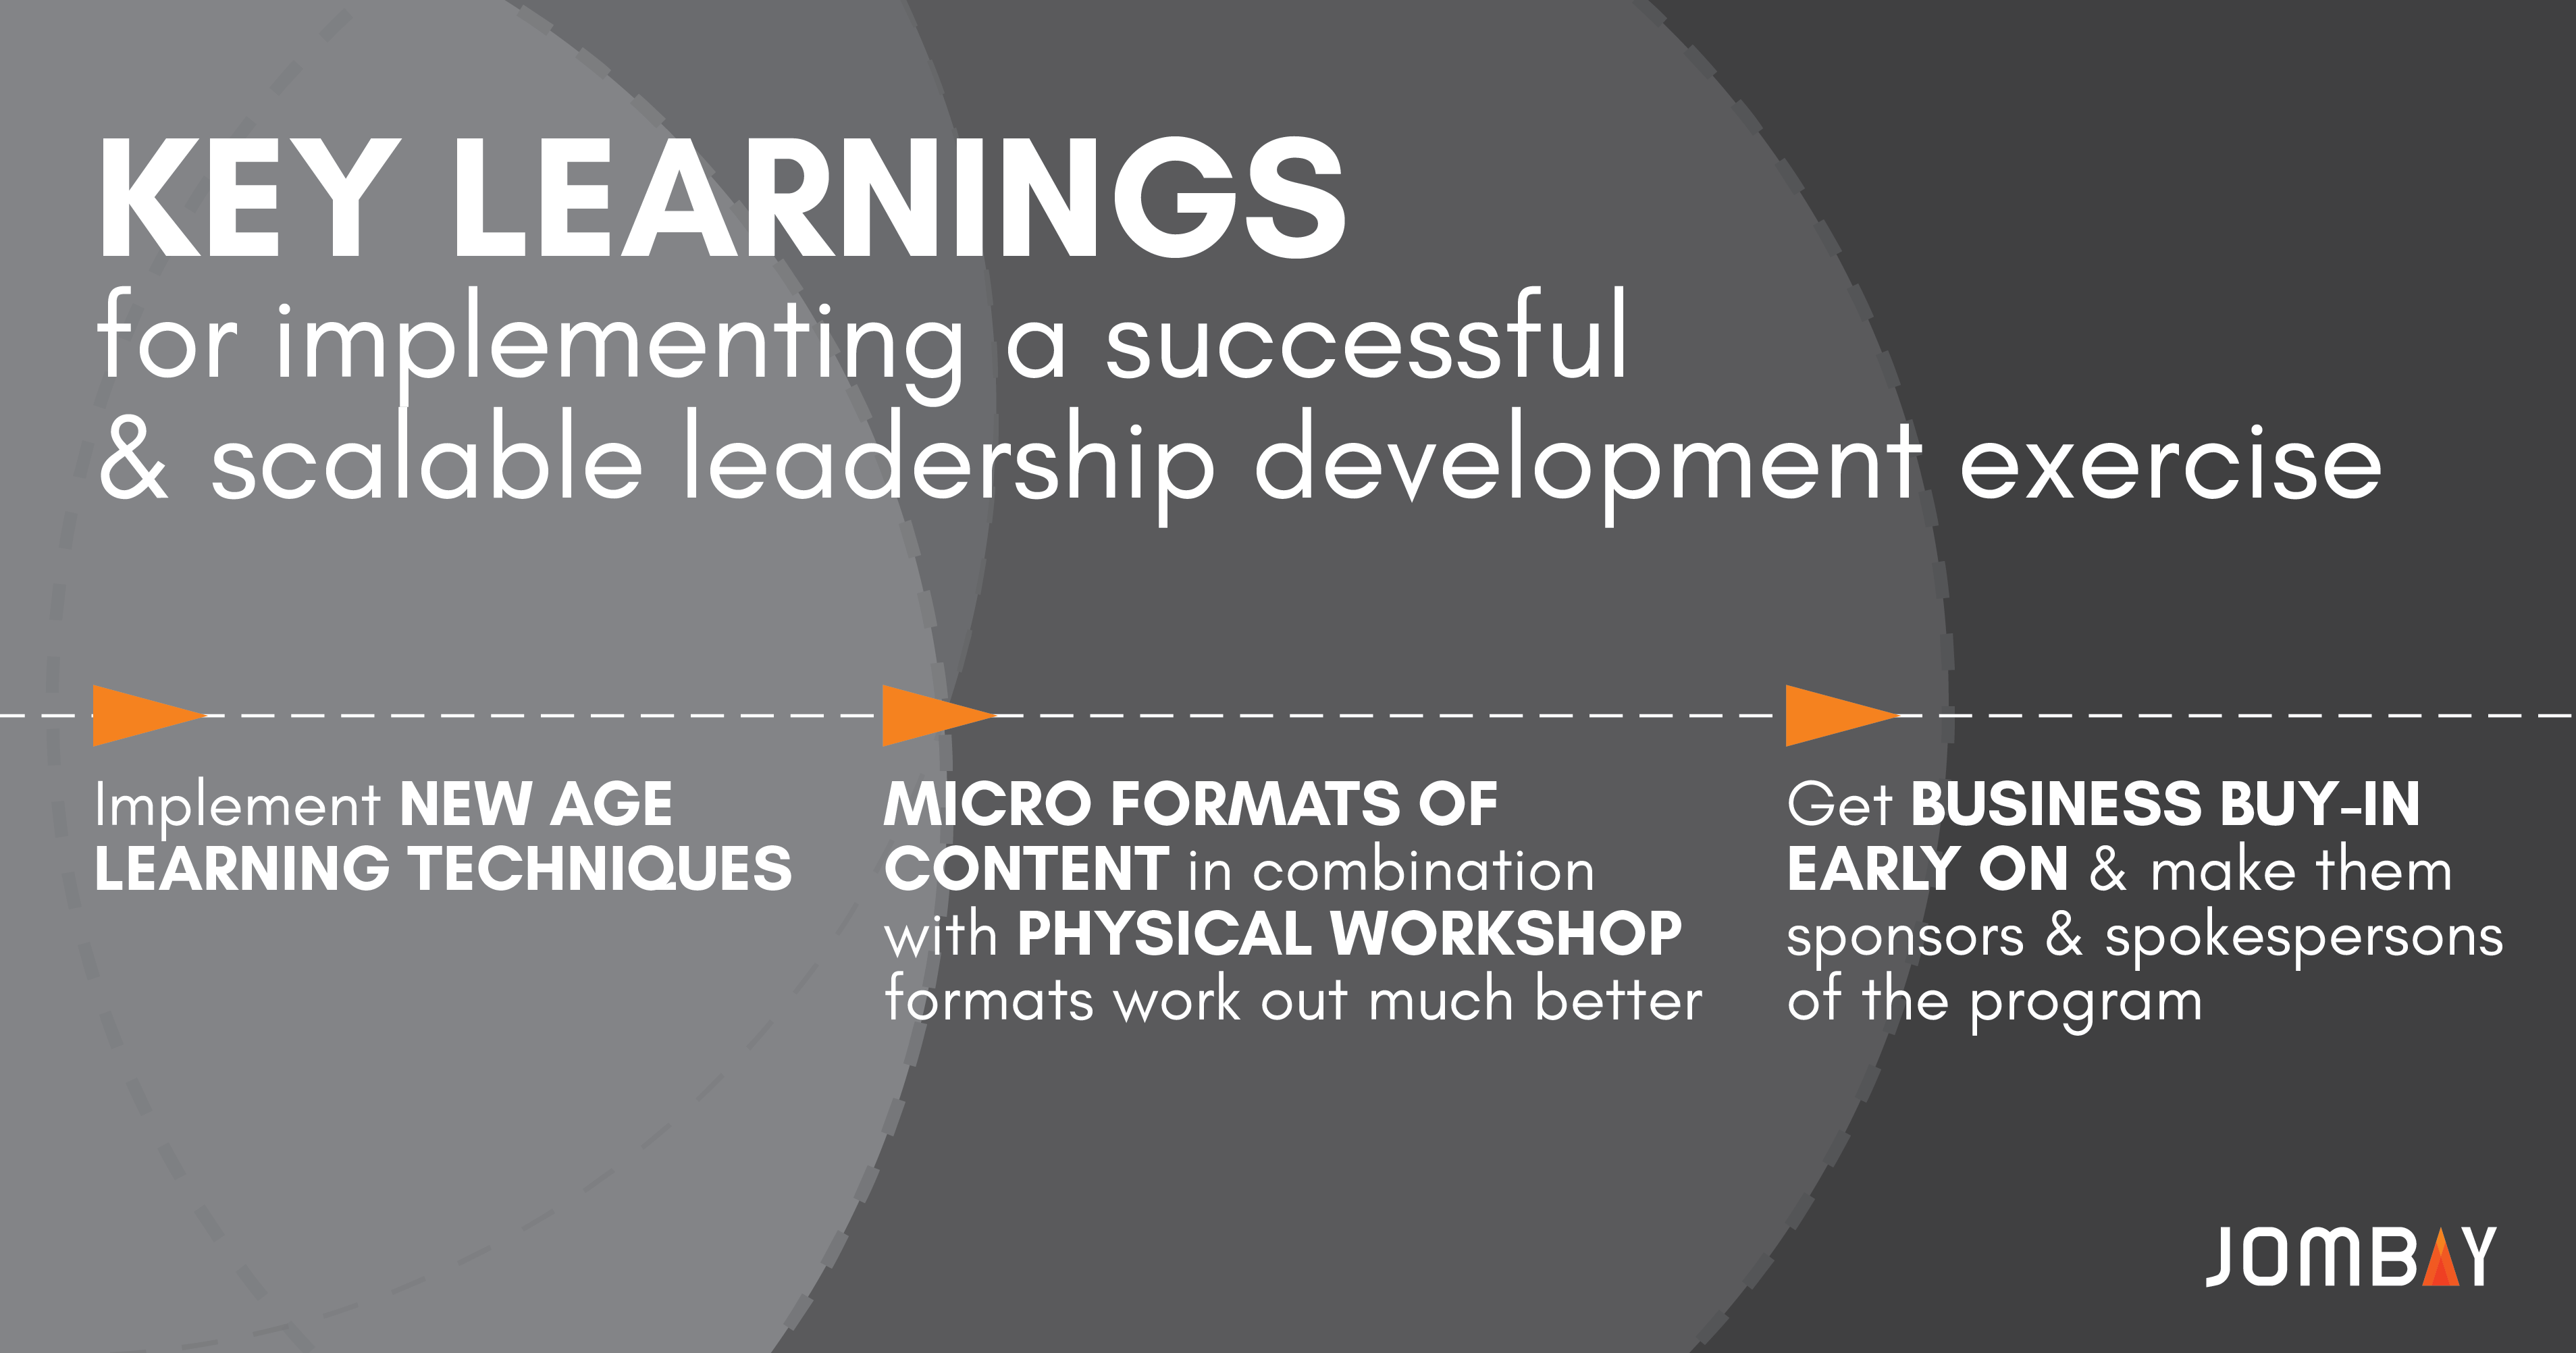 Building Learning Culture 4